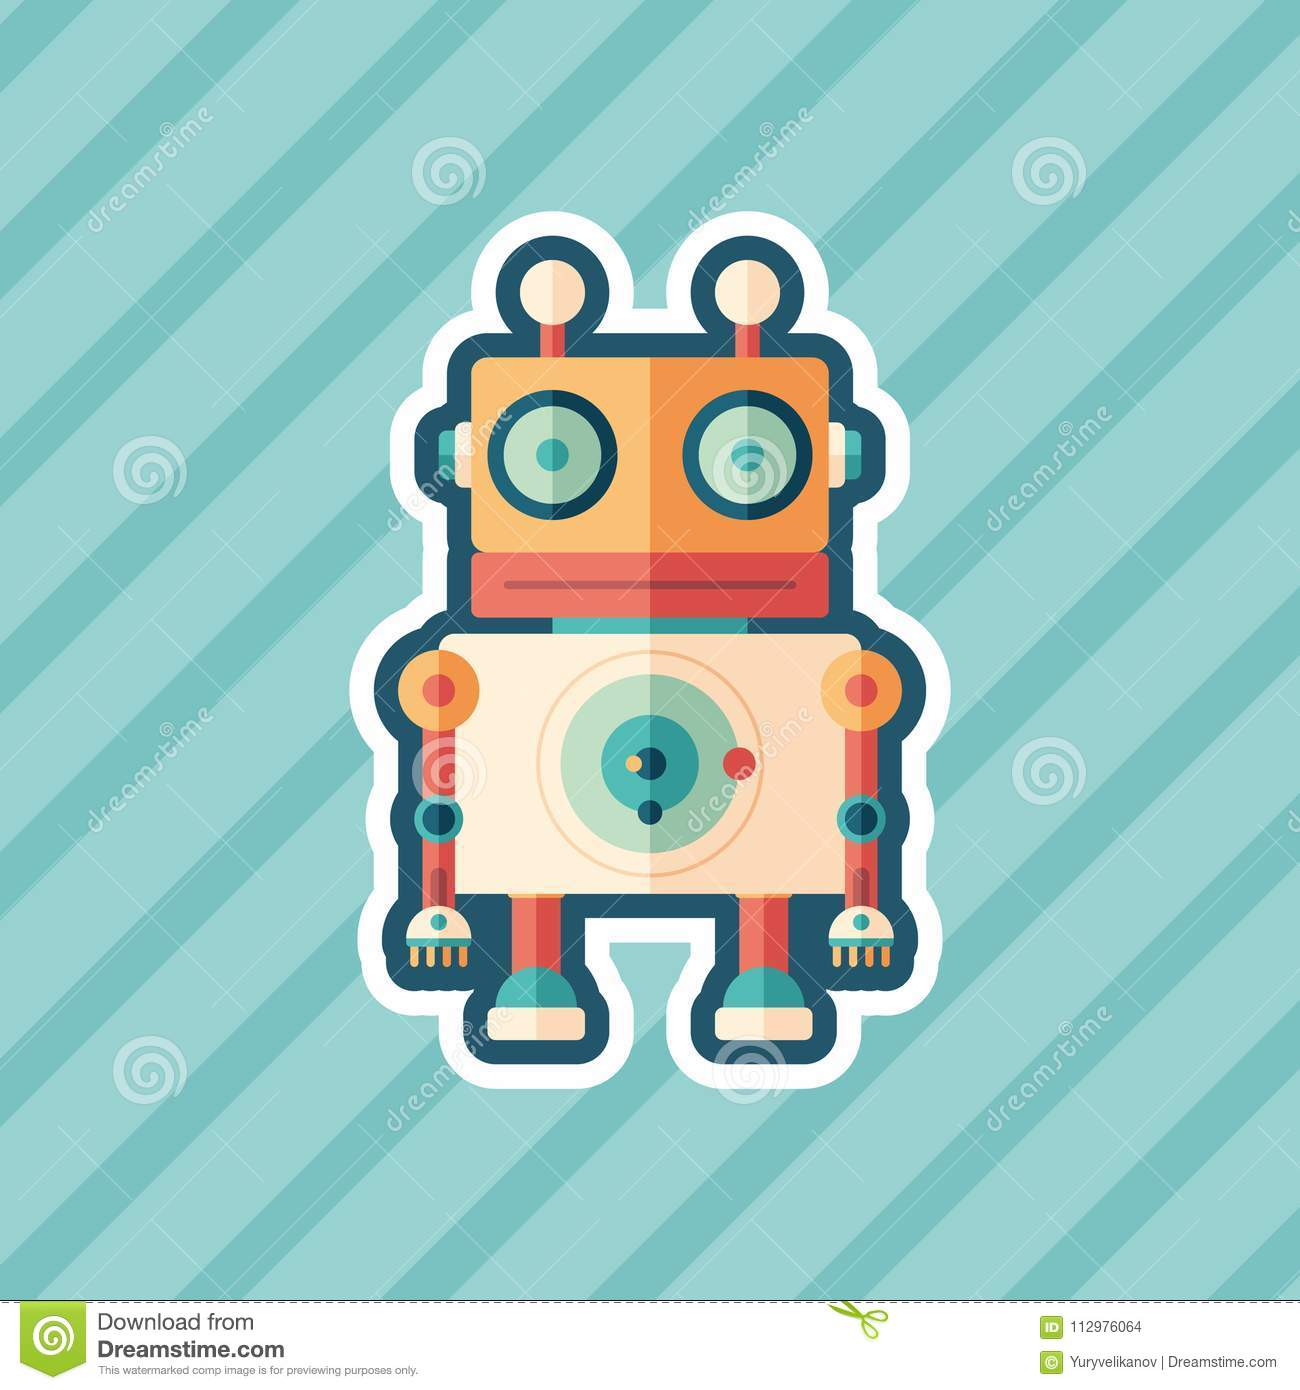 Robot stargazer sticker flat icon with color background.